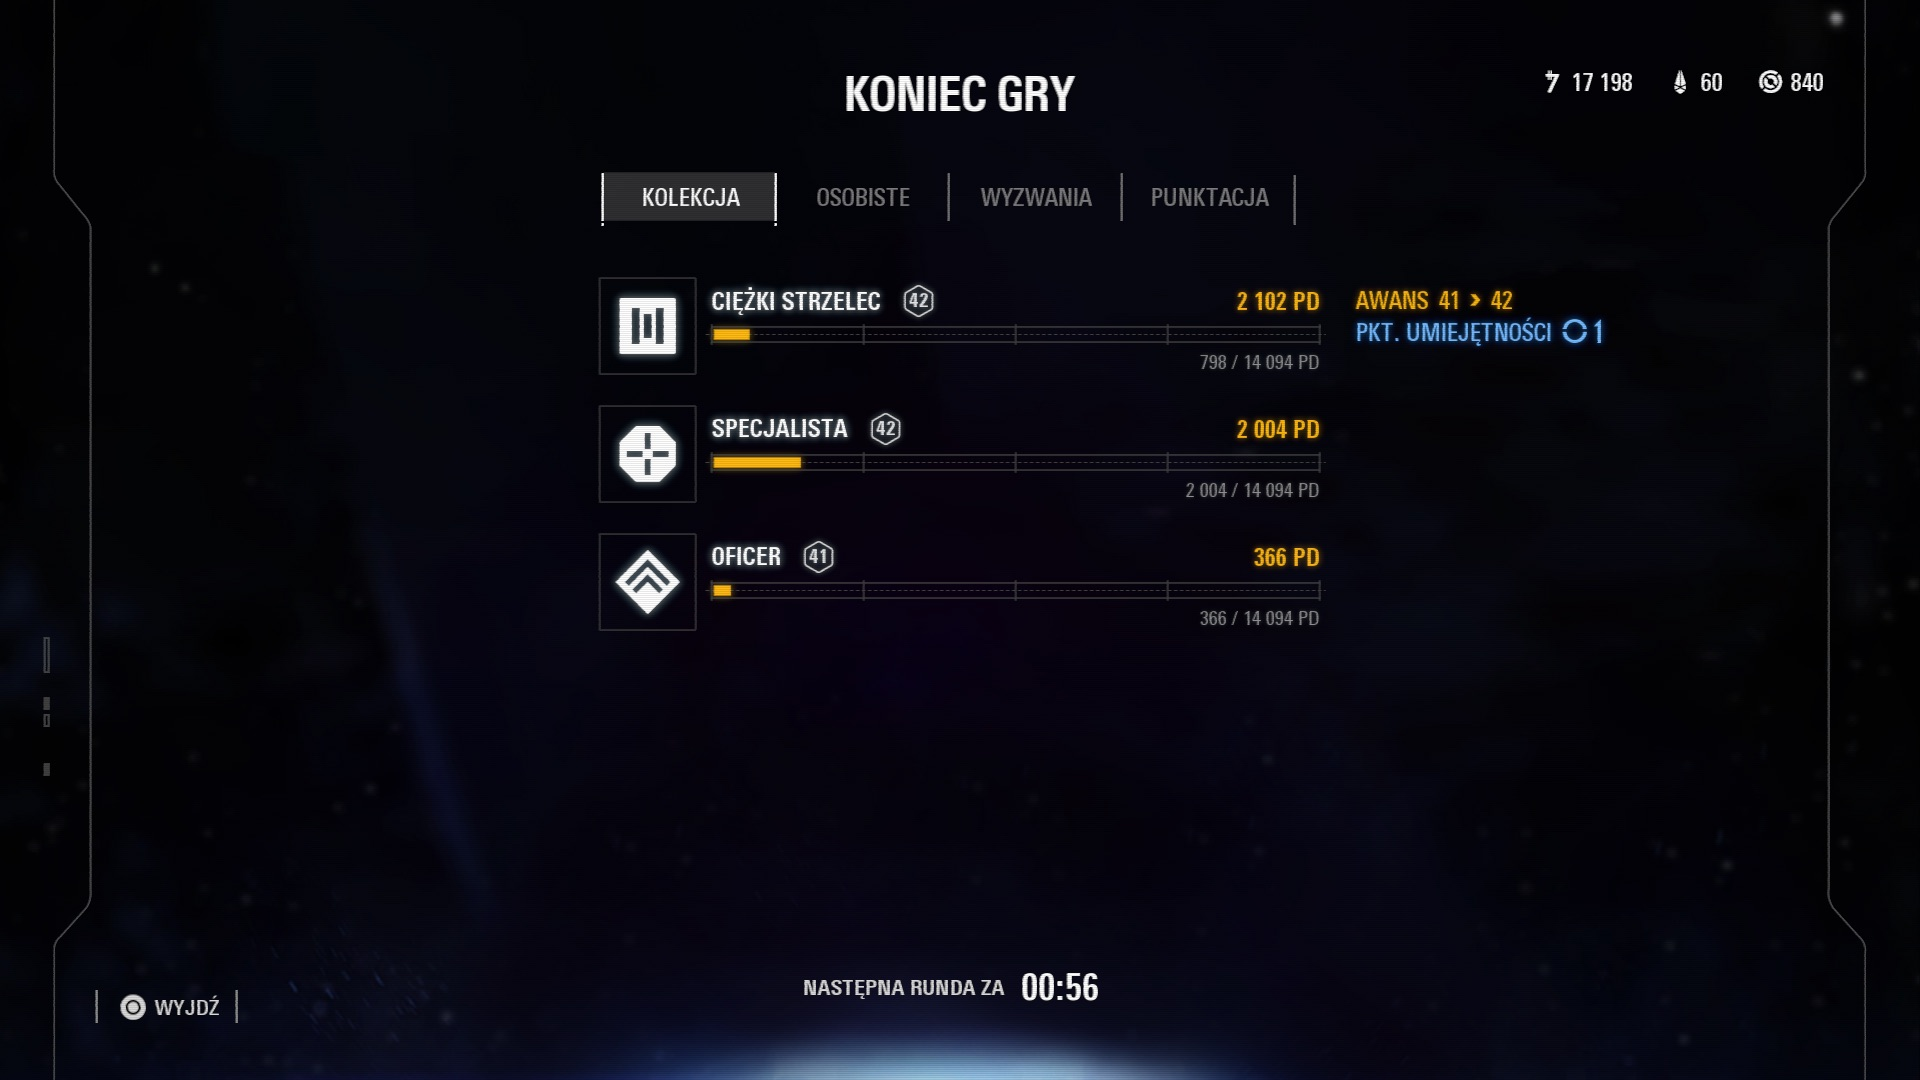 star wars battlefront 2 patch 2.0 nowa progresja opinie 7